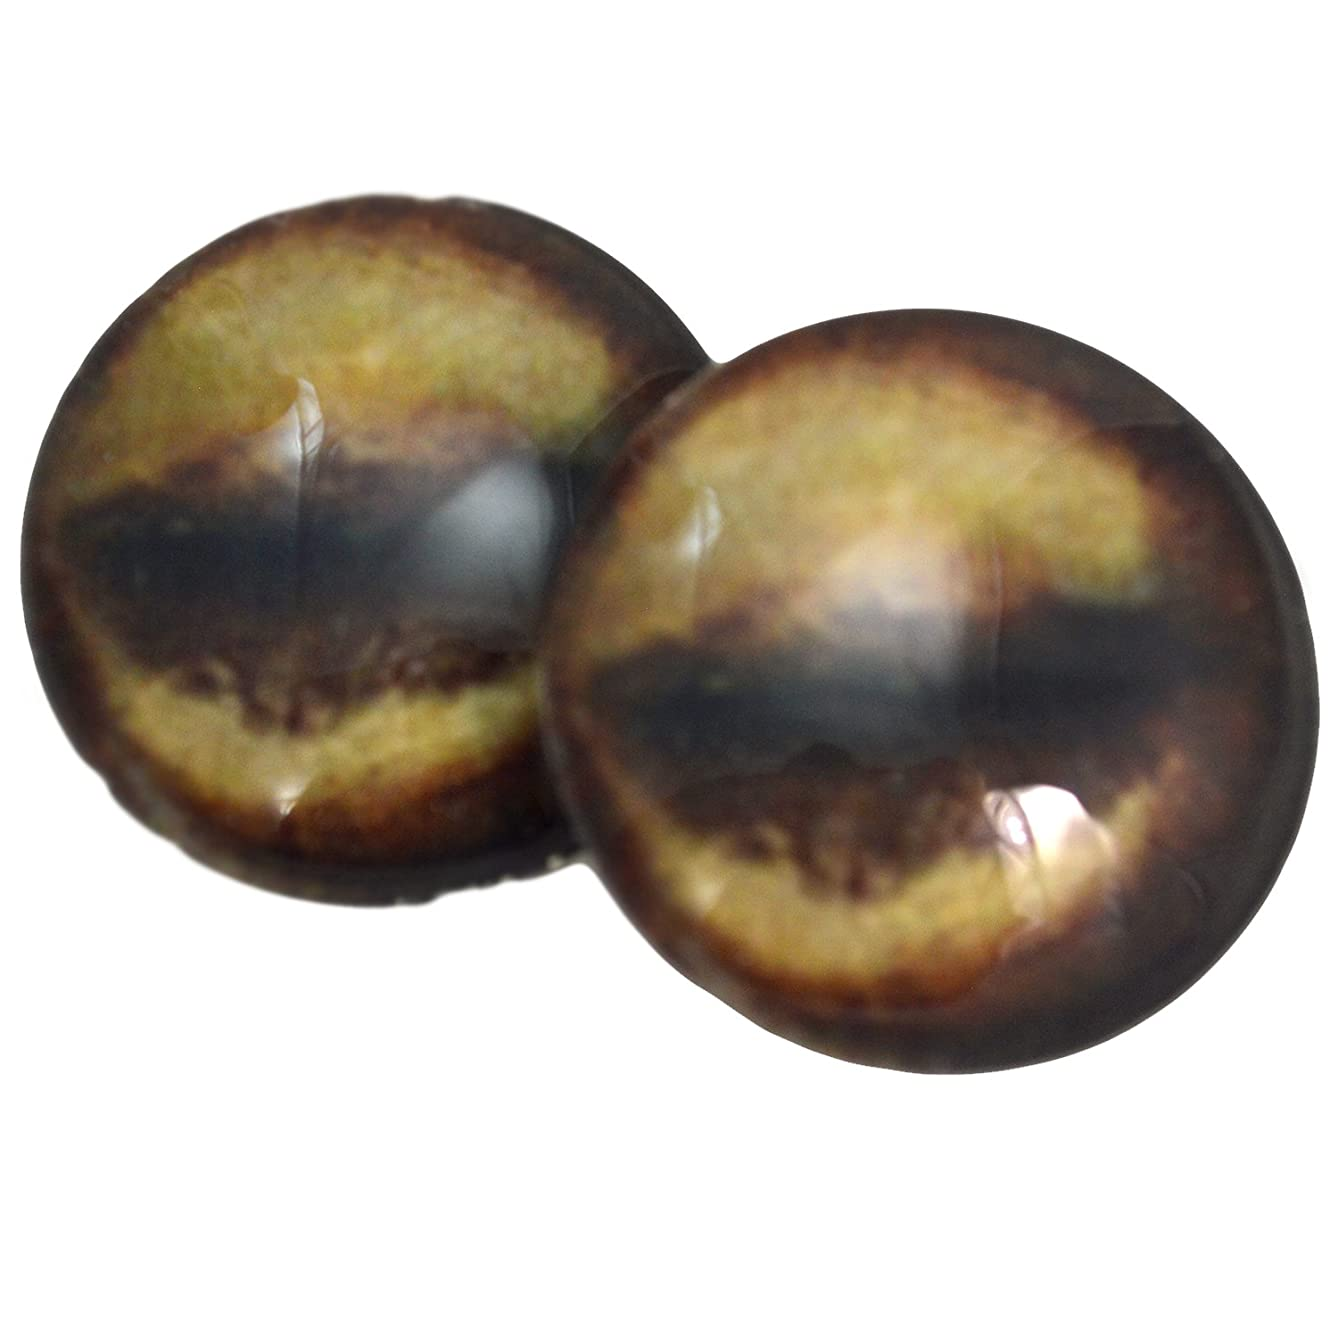 Megan's Beaded Designs 40mm Glass Antelope Eyes Animal Pair Realistic Taxidermy Sculptures or Jewelry Making Crafts Set of 2,brown